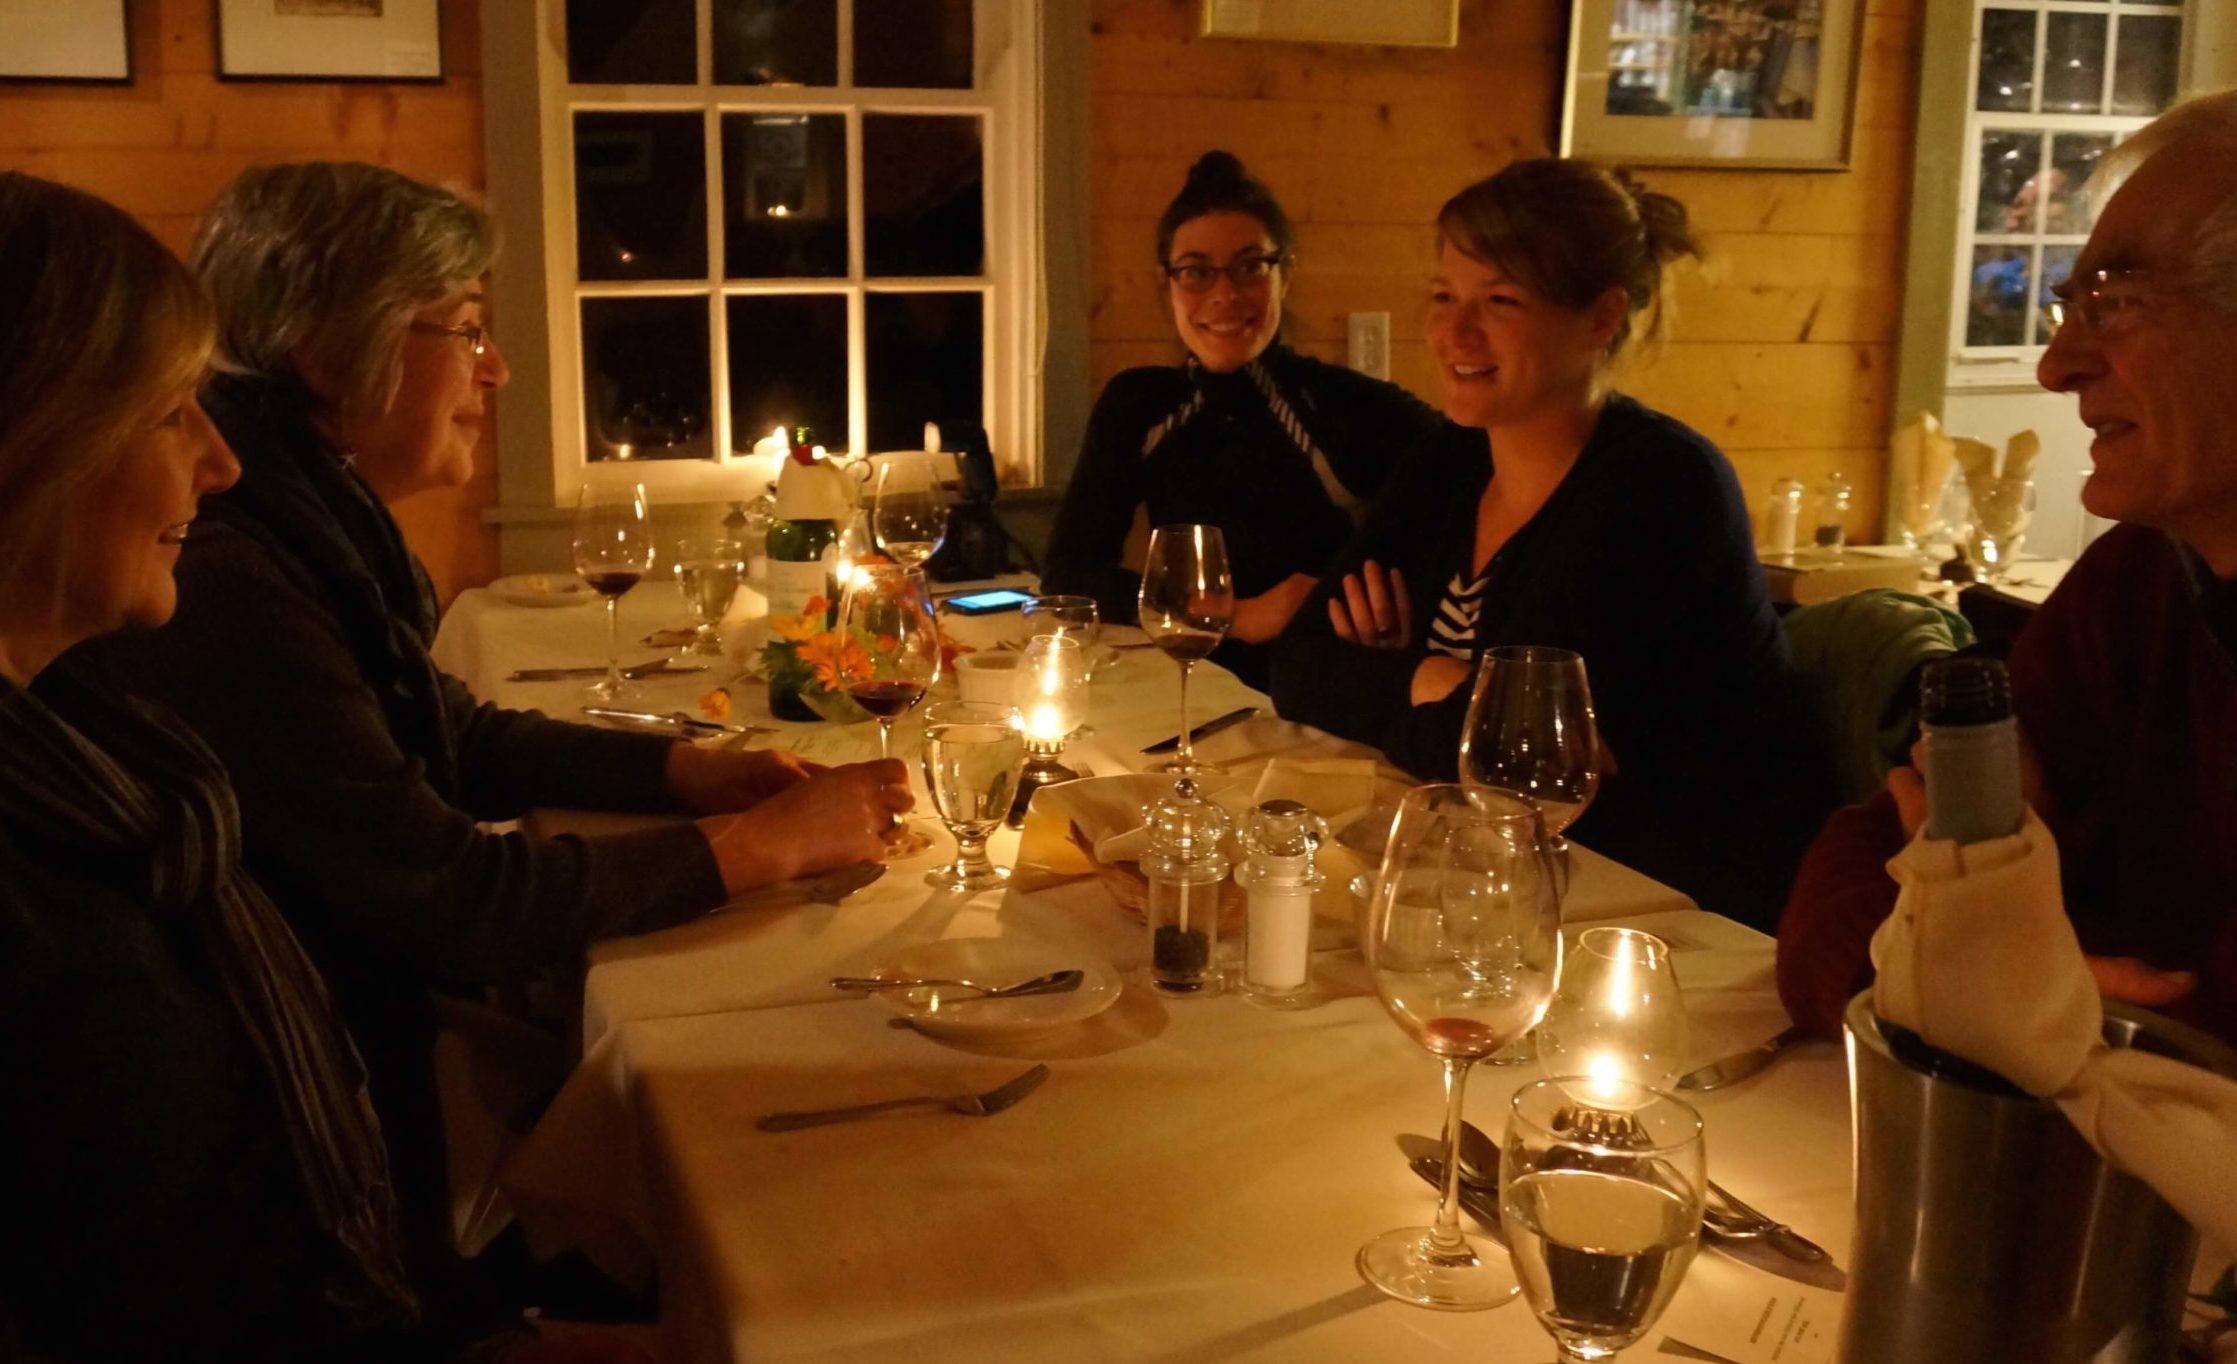 Dine by candlelight at the The Twine Loft